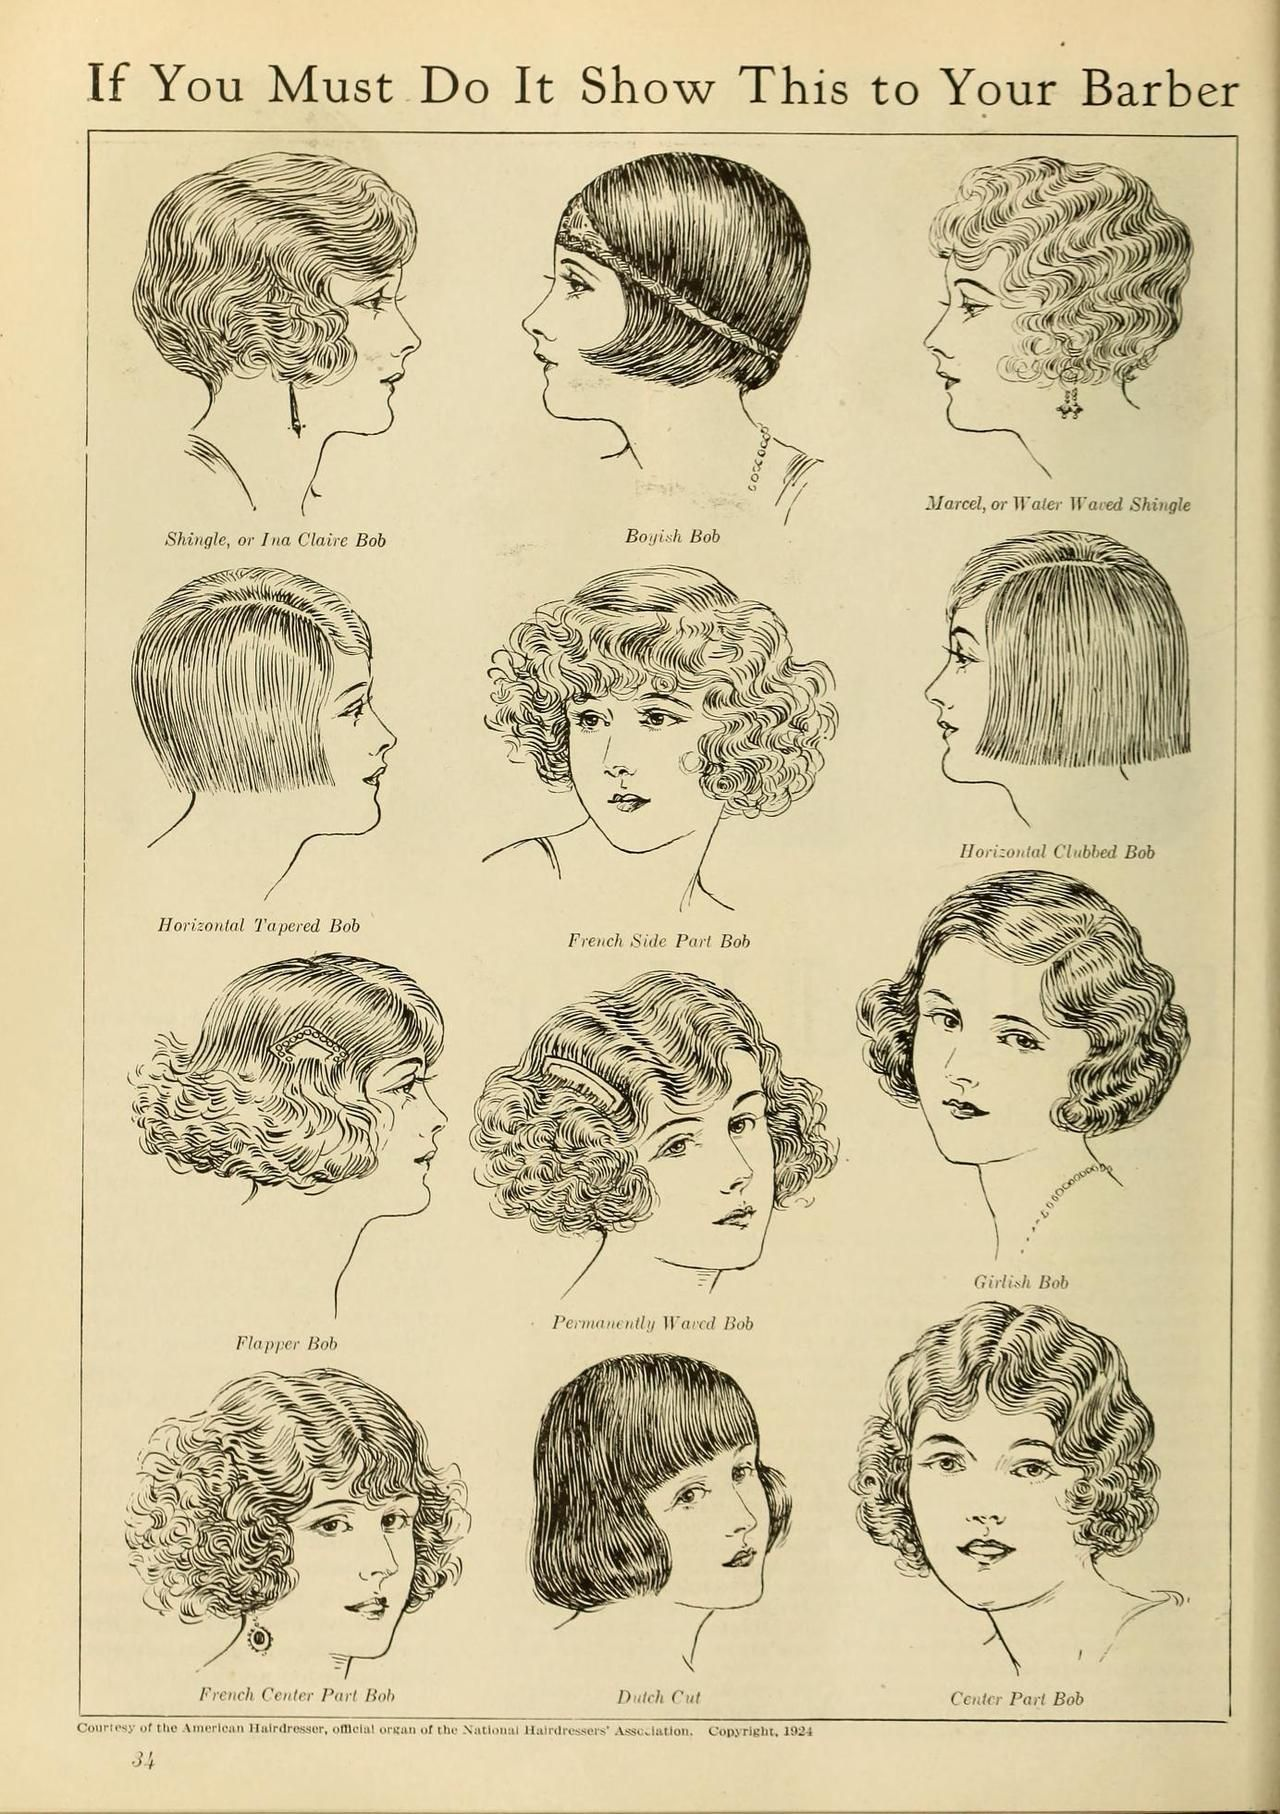 Pin By April On Hair Make Up Vintage And Otherwise Tutorials And Inspiration 1920s Hair 1920s Fashion Long Hair Styles